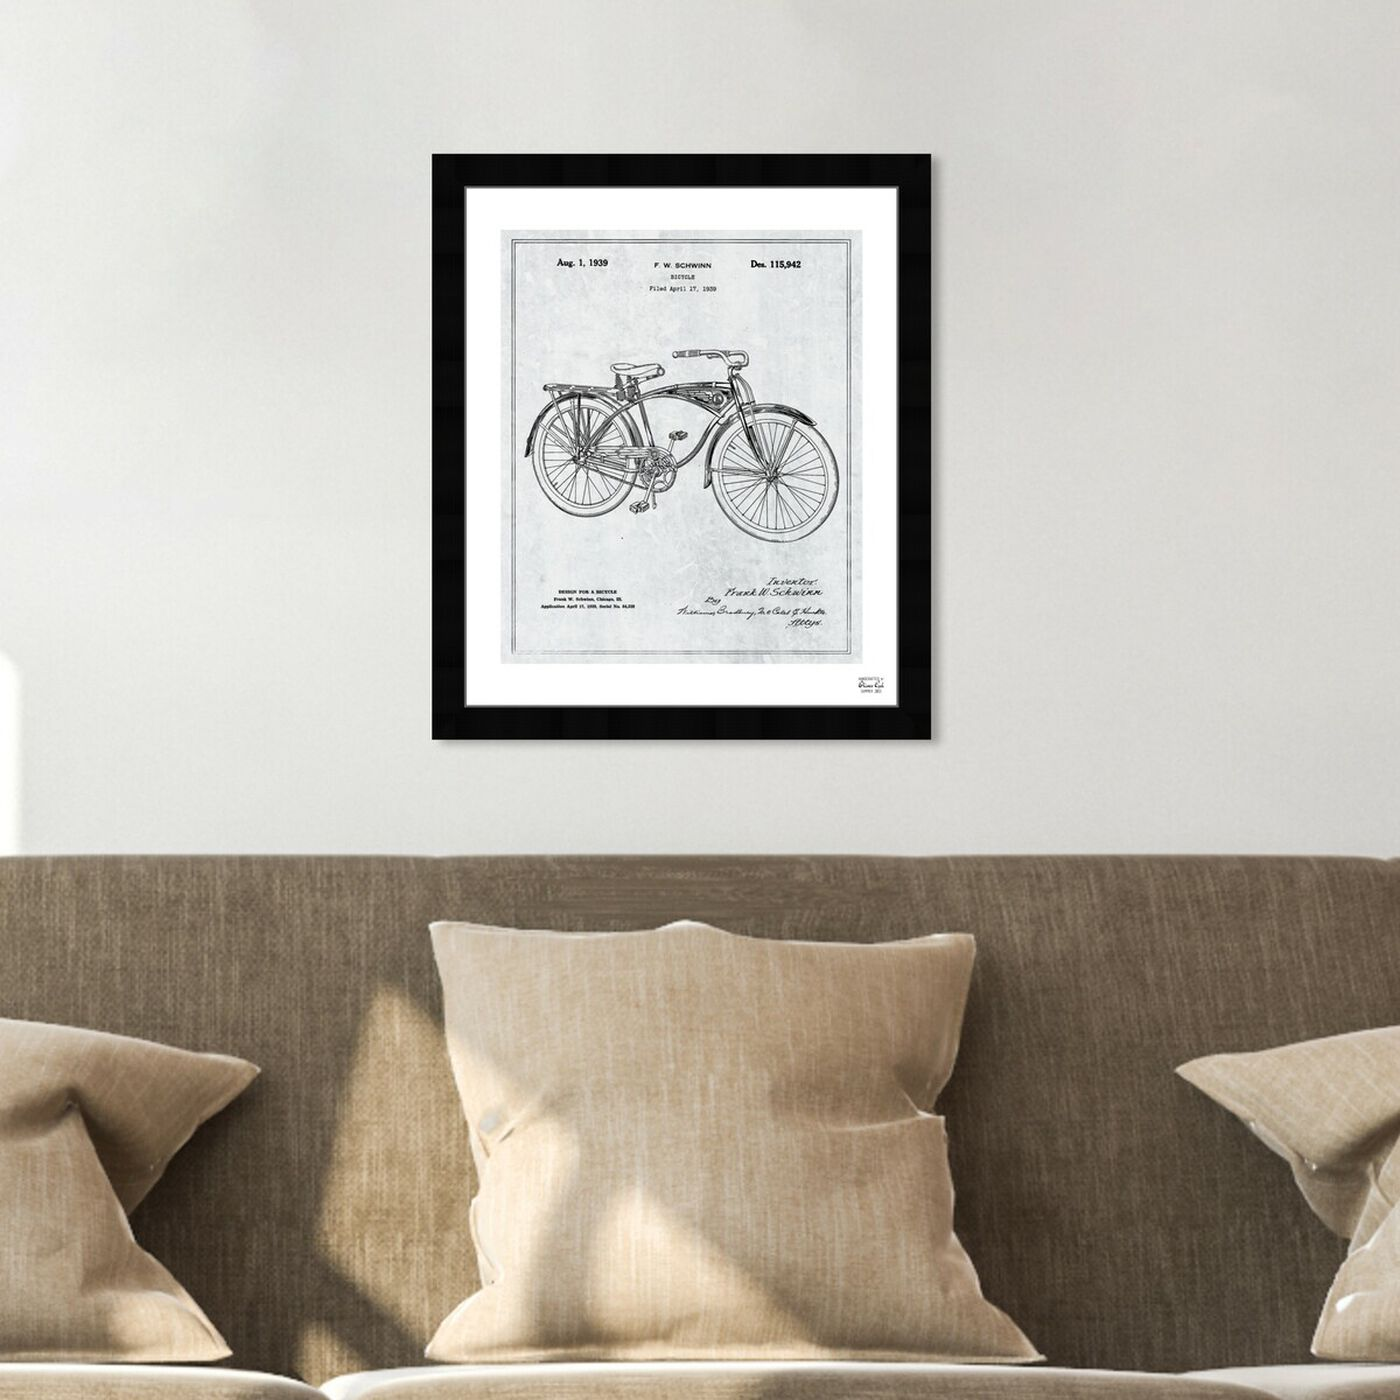 Hanging view of Schwinn Bicycle 1939 Grey featuring transportation and bicycles art.